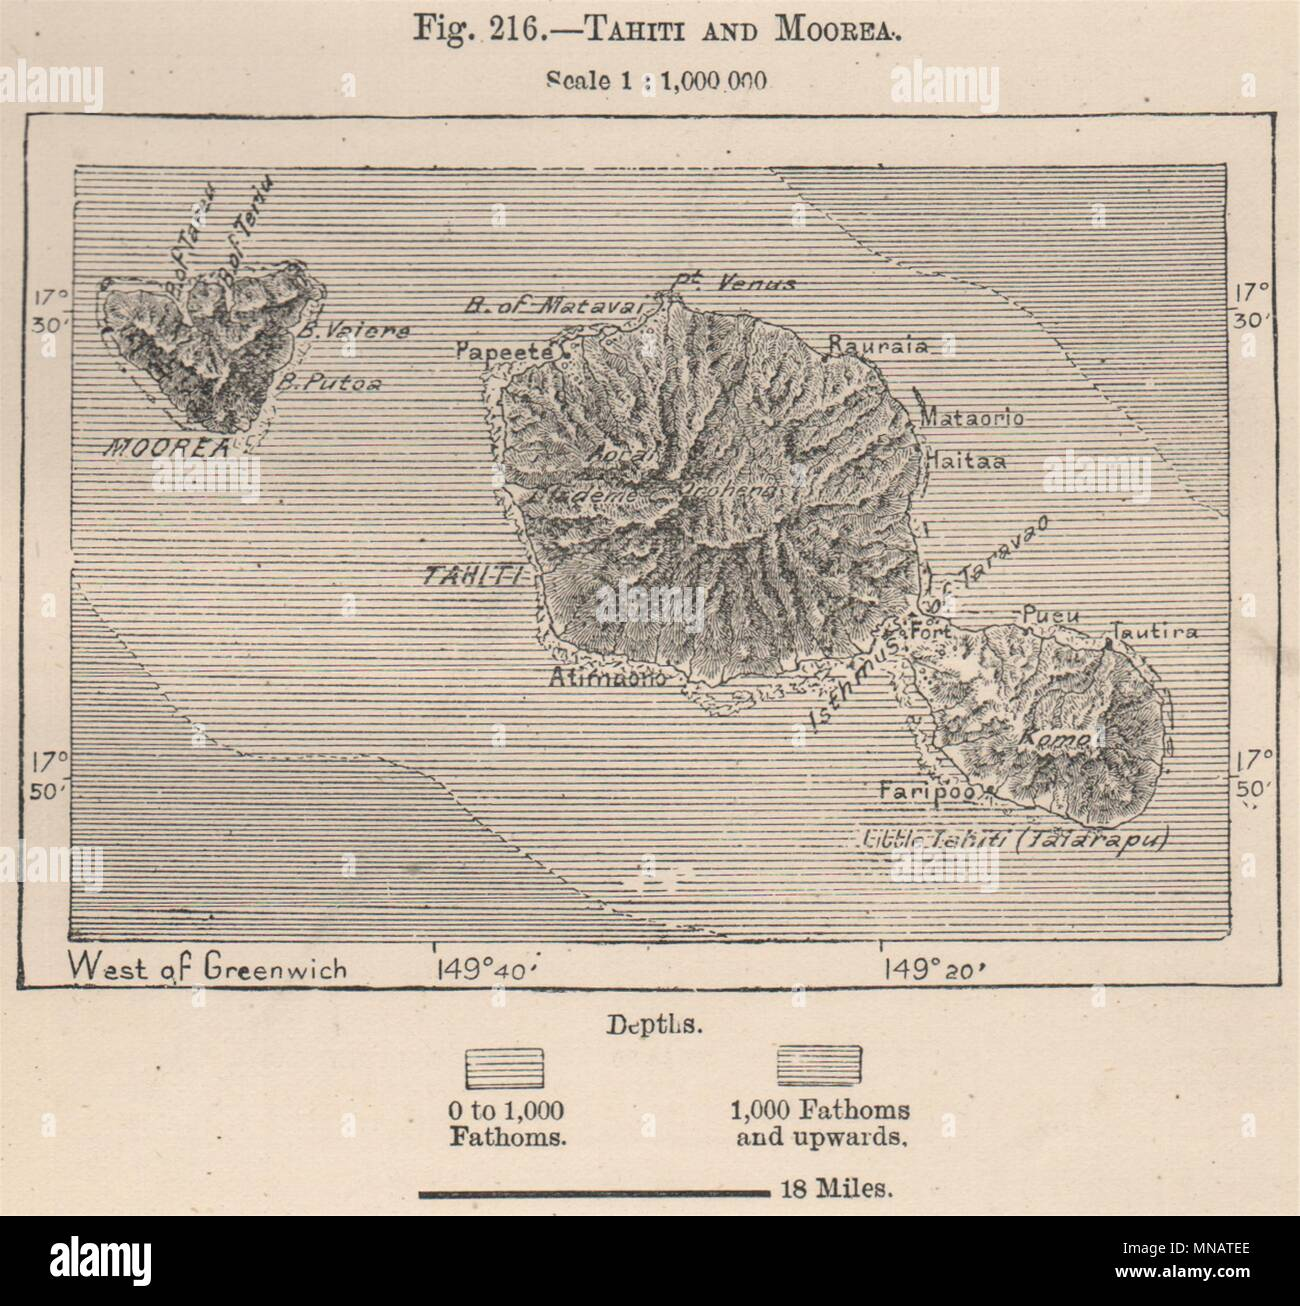 Tahiti And Moorea French Polynesia 1885 Old Antique Vintage